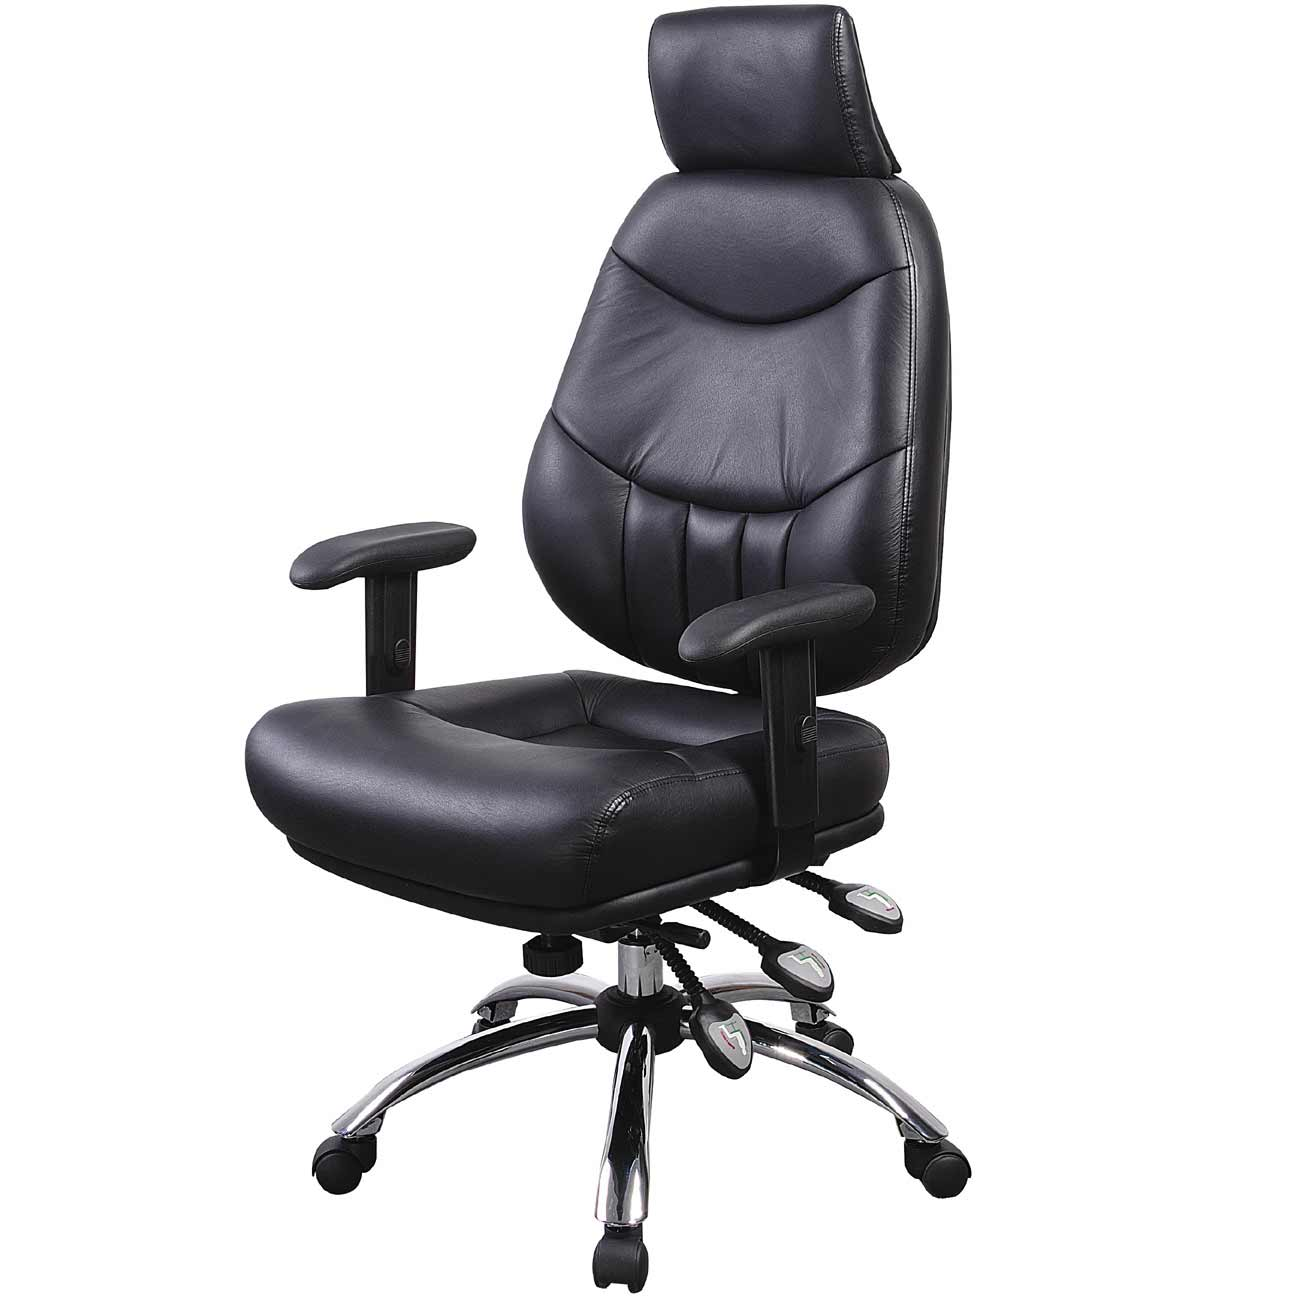 fully adjustable ergonomic office task chair